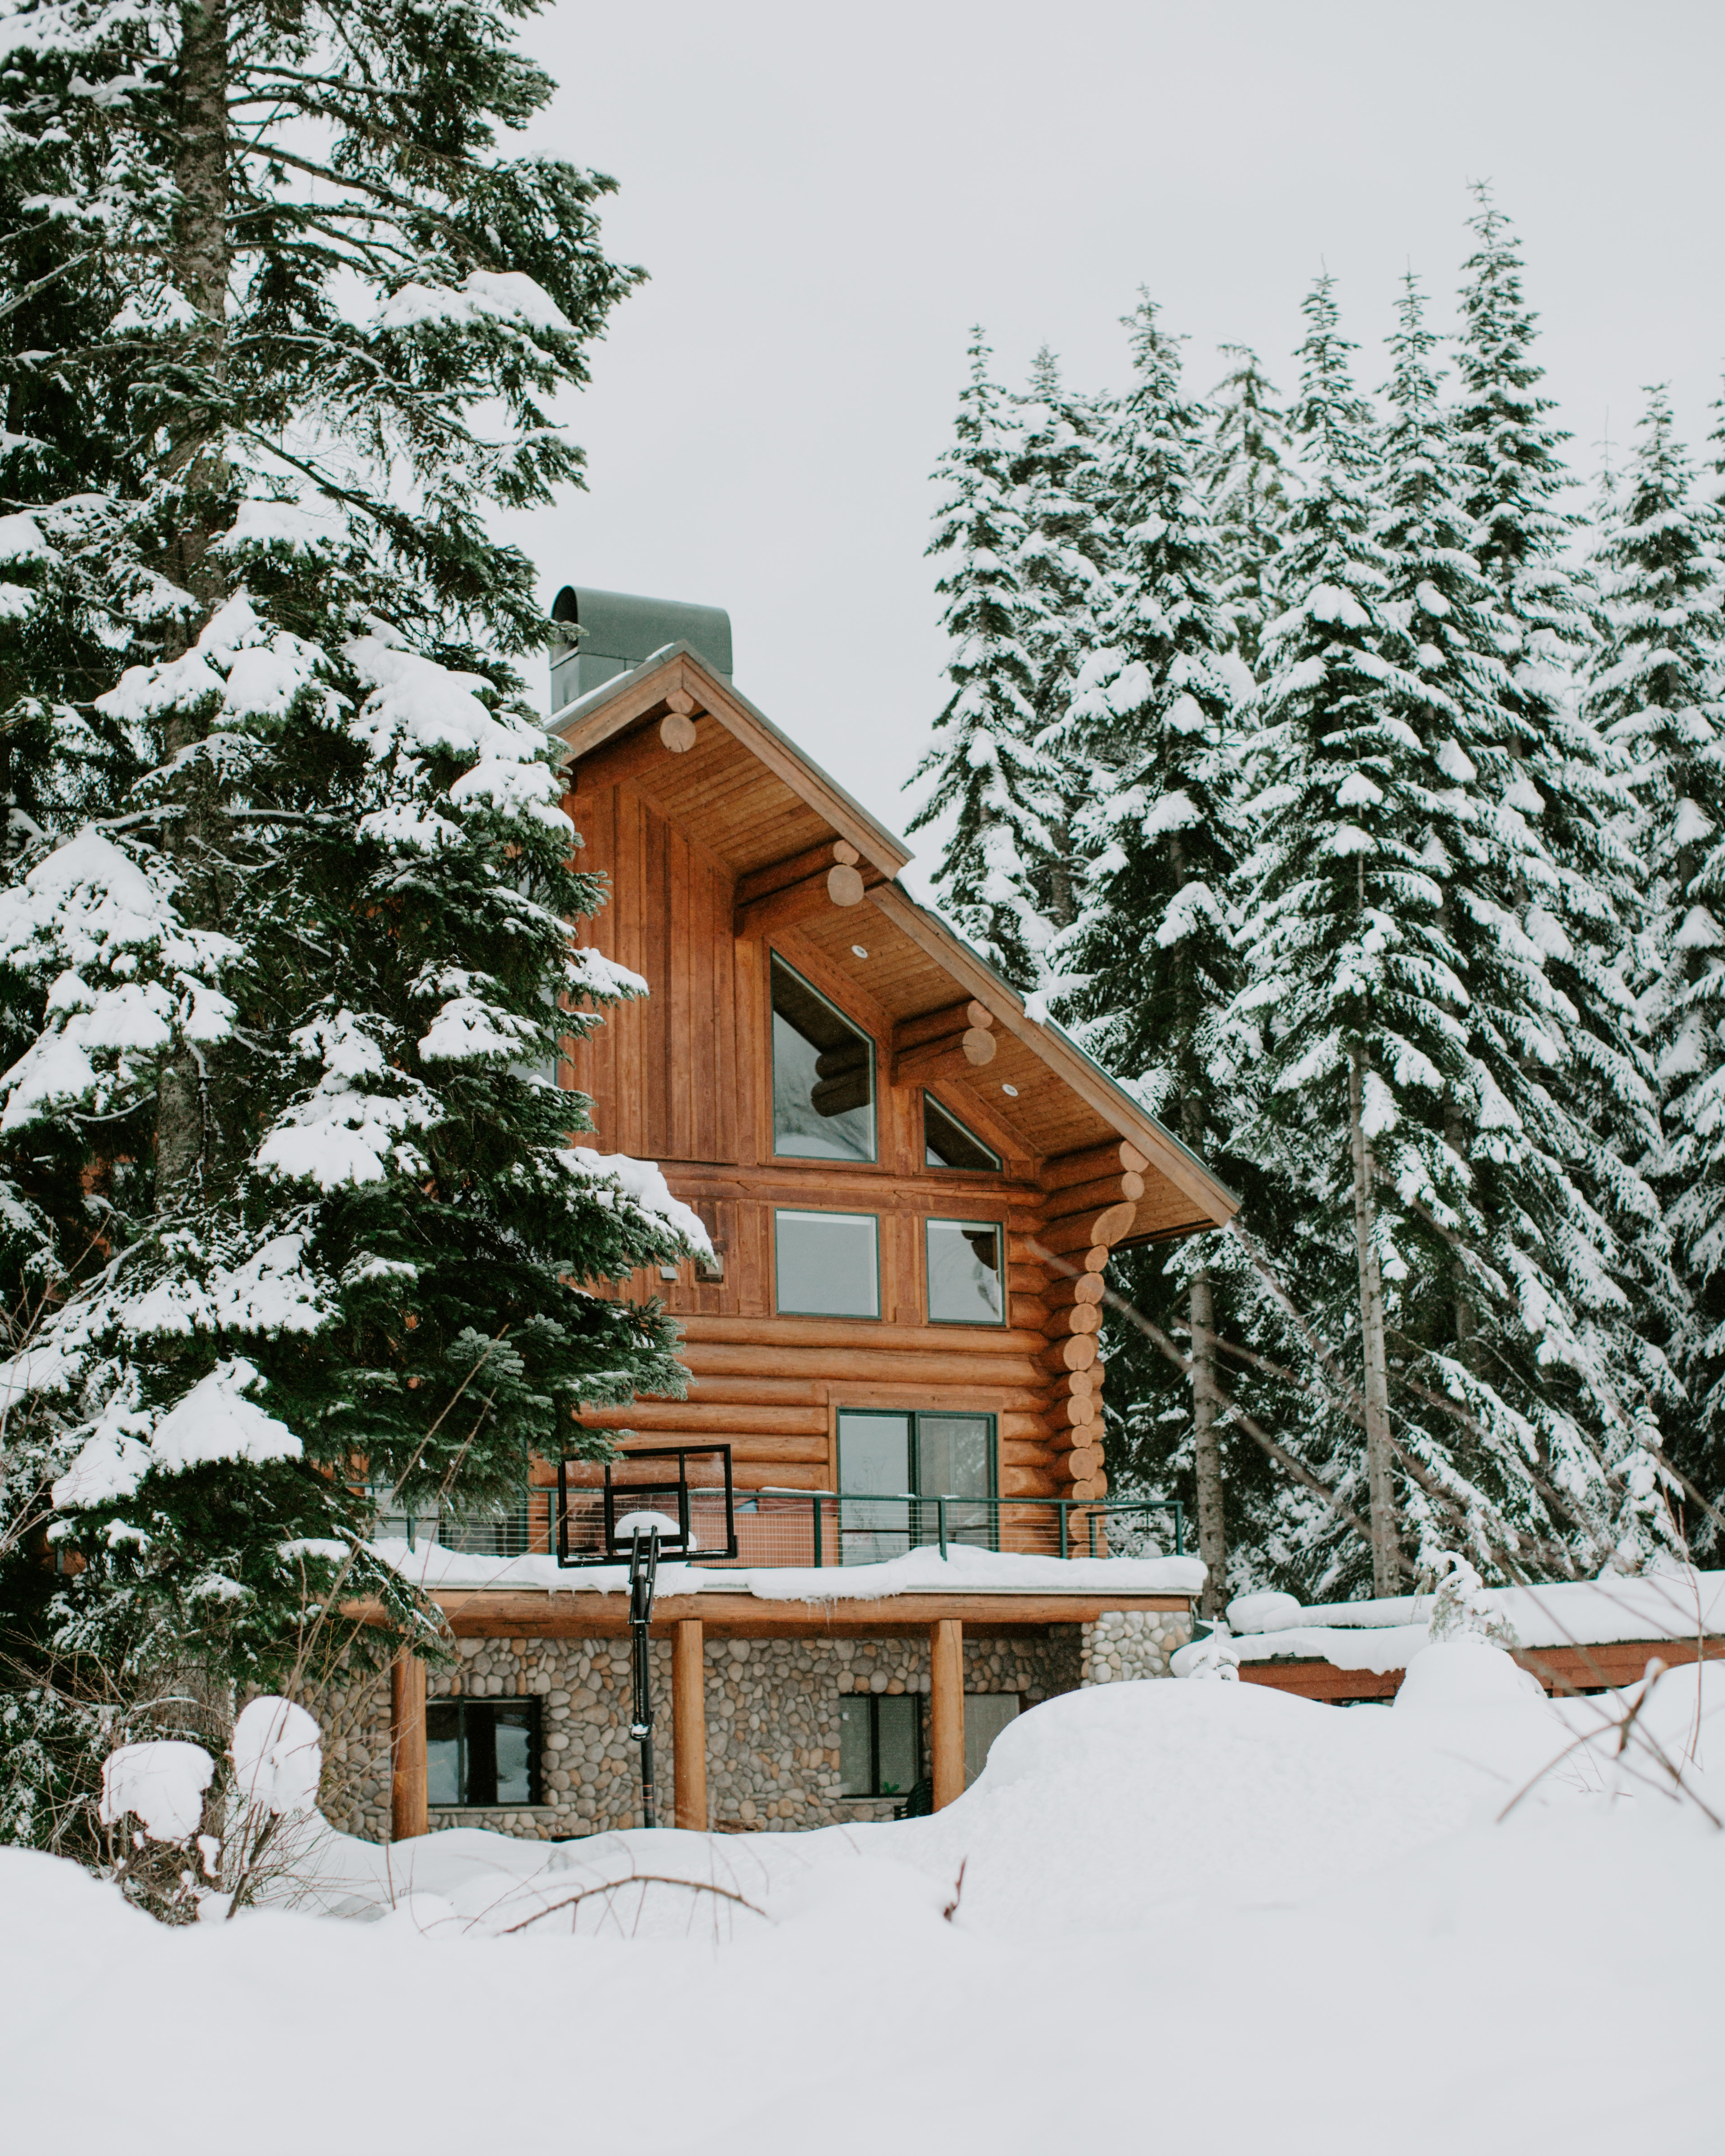 Photography of Brown House Surrounded by Trees Covered by Snow, Architecture, Icy, Wooden house, Winter, HQ Photo